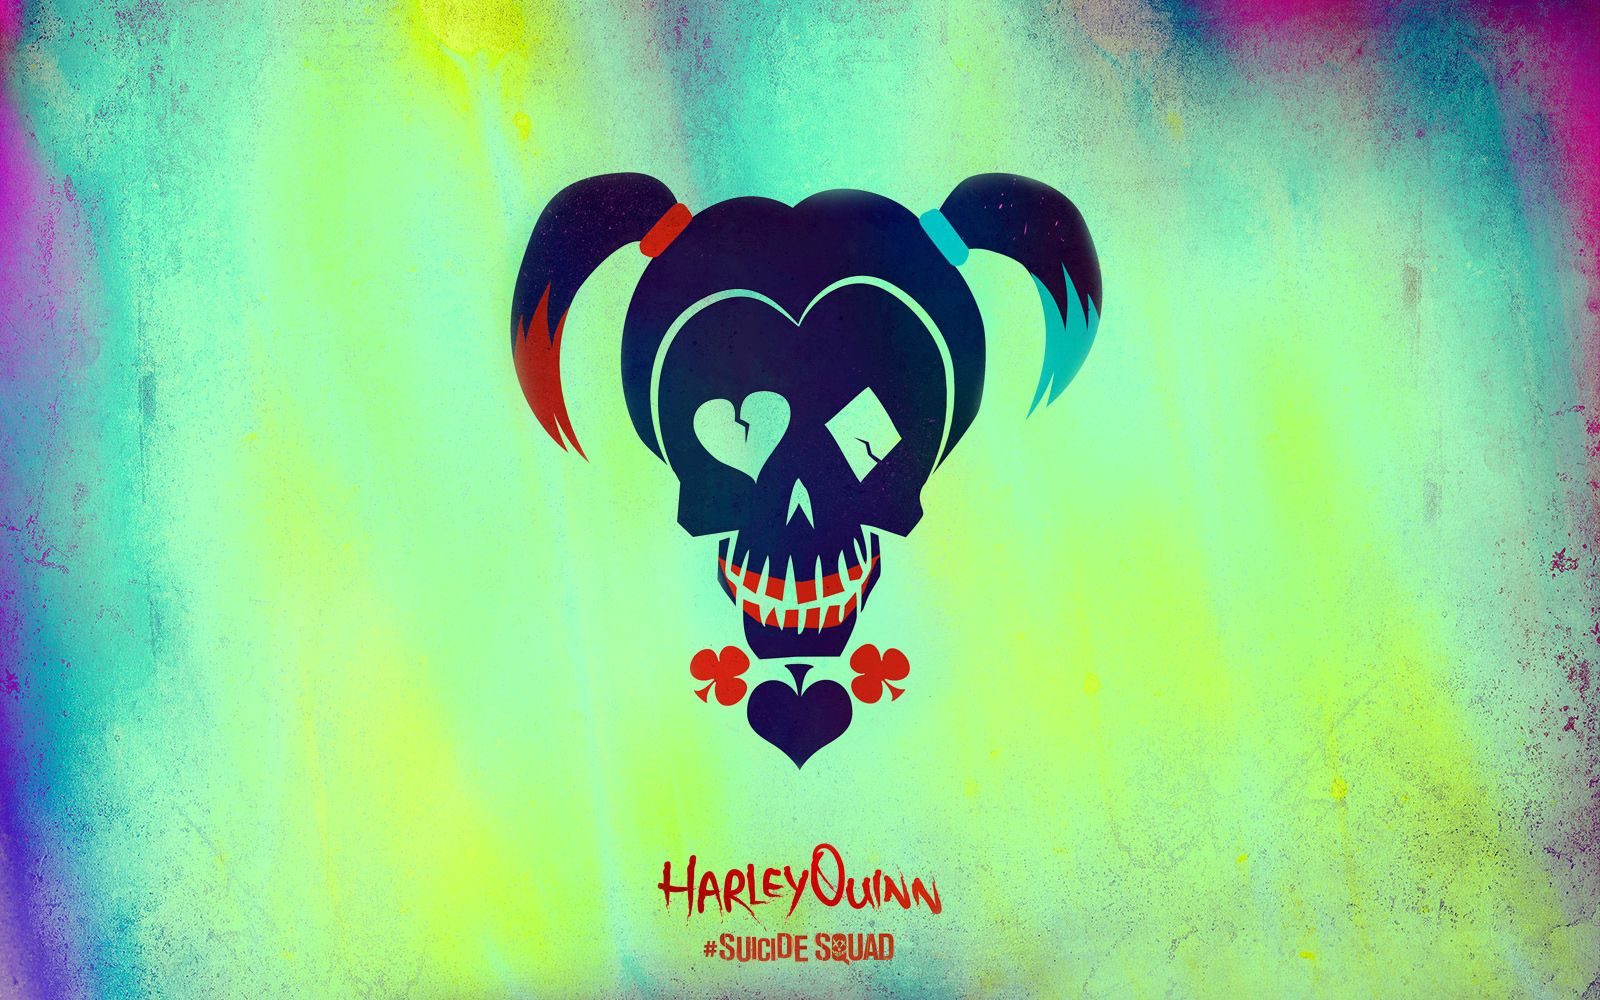 Harley Quinn Logo Wallpapers - Top Free Harley Quinn Logo ...